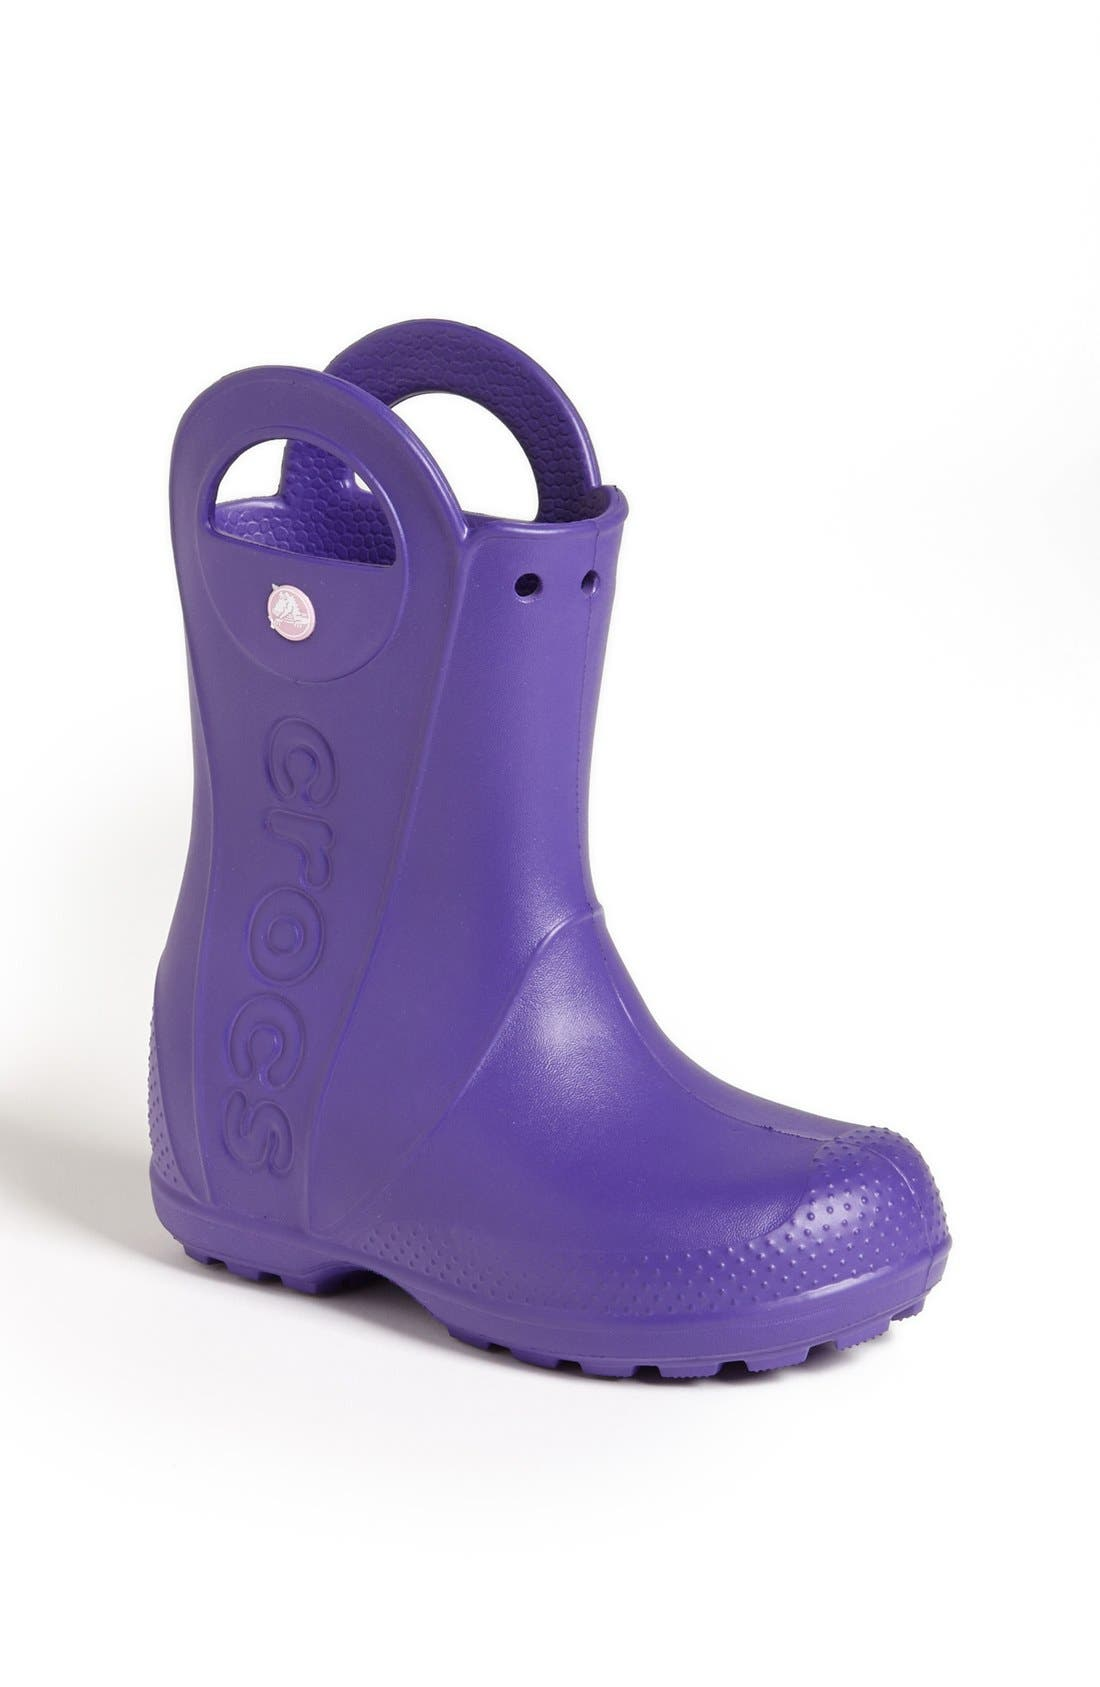 Main Image - CROCS™ 'Handle It' Rain Boot (Walker, Toddler & Little Kid)